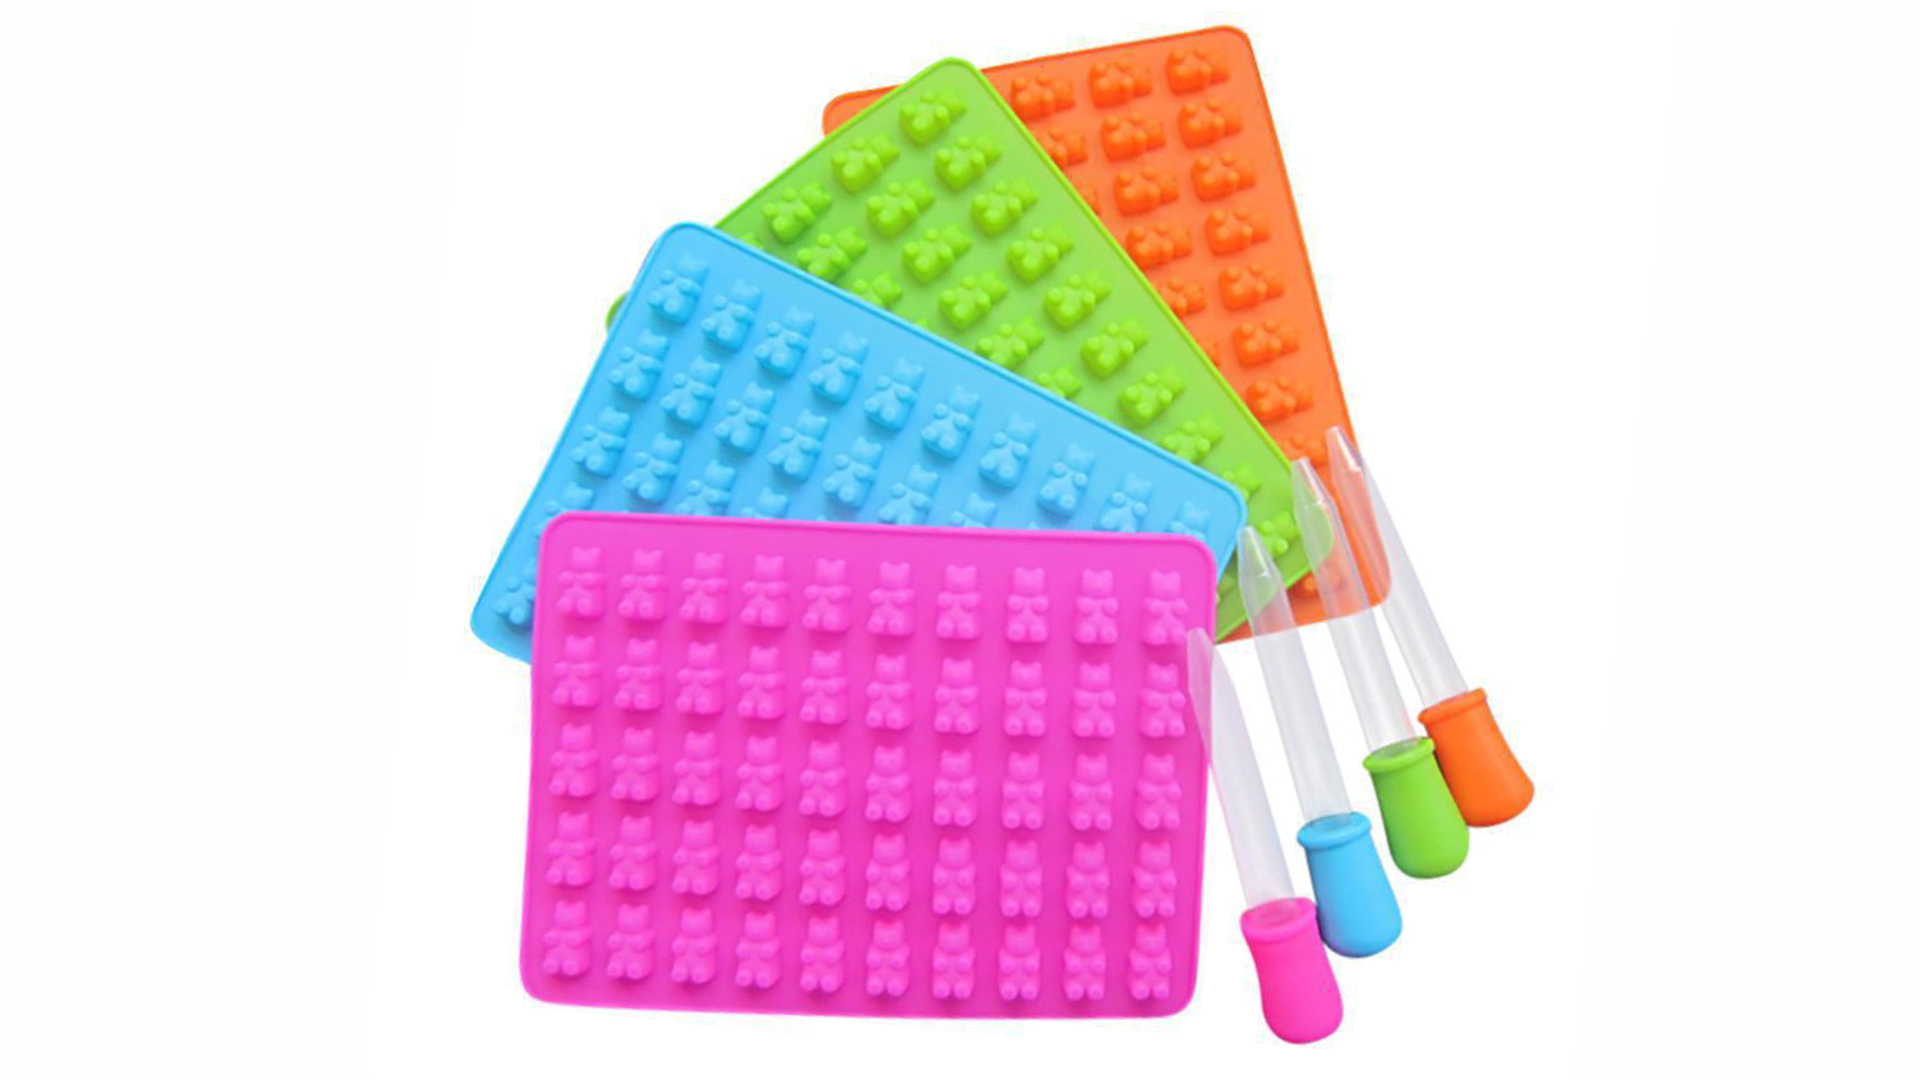 Professional 53 Cavities Silicone Gummy Bear Candy Molds with a Dropper Making Gummy Candy Chocolate with Your Kids Together DH Silicone